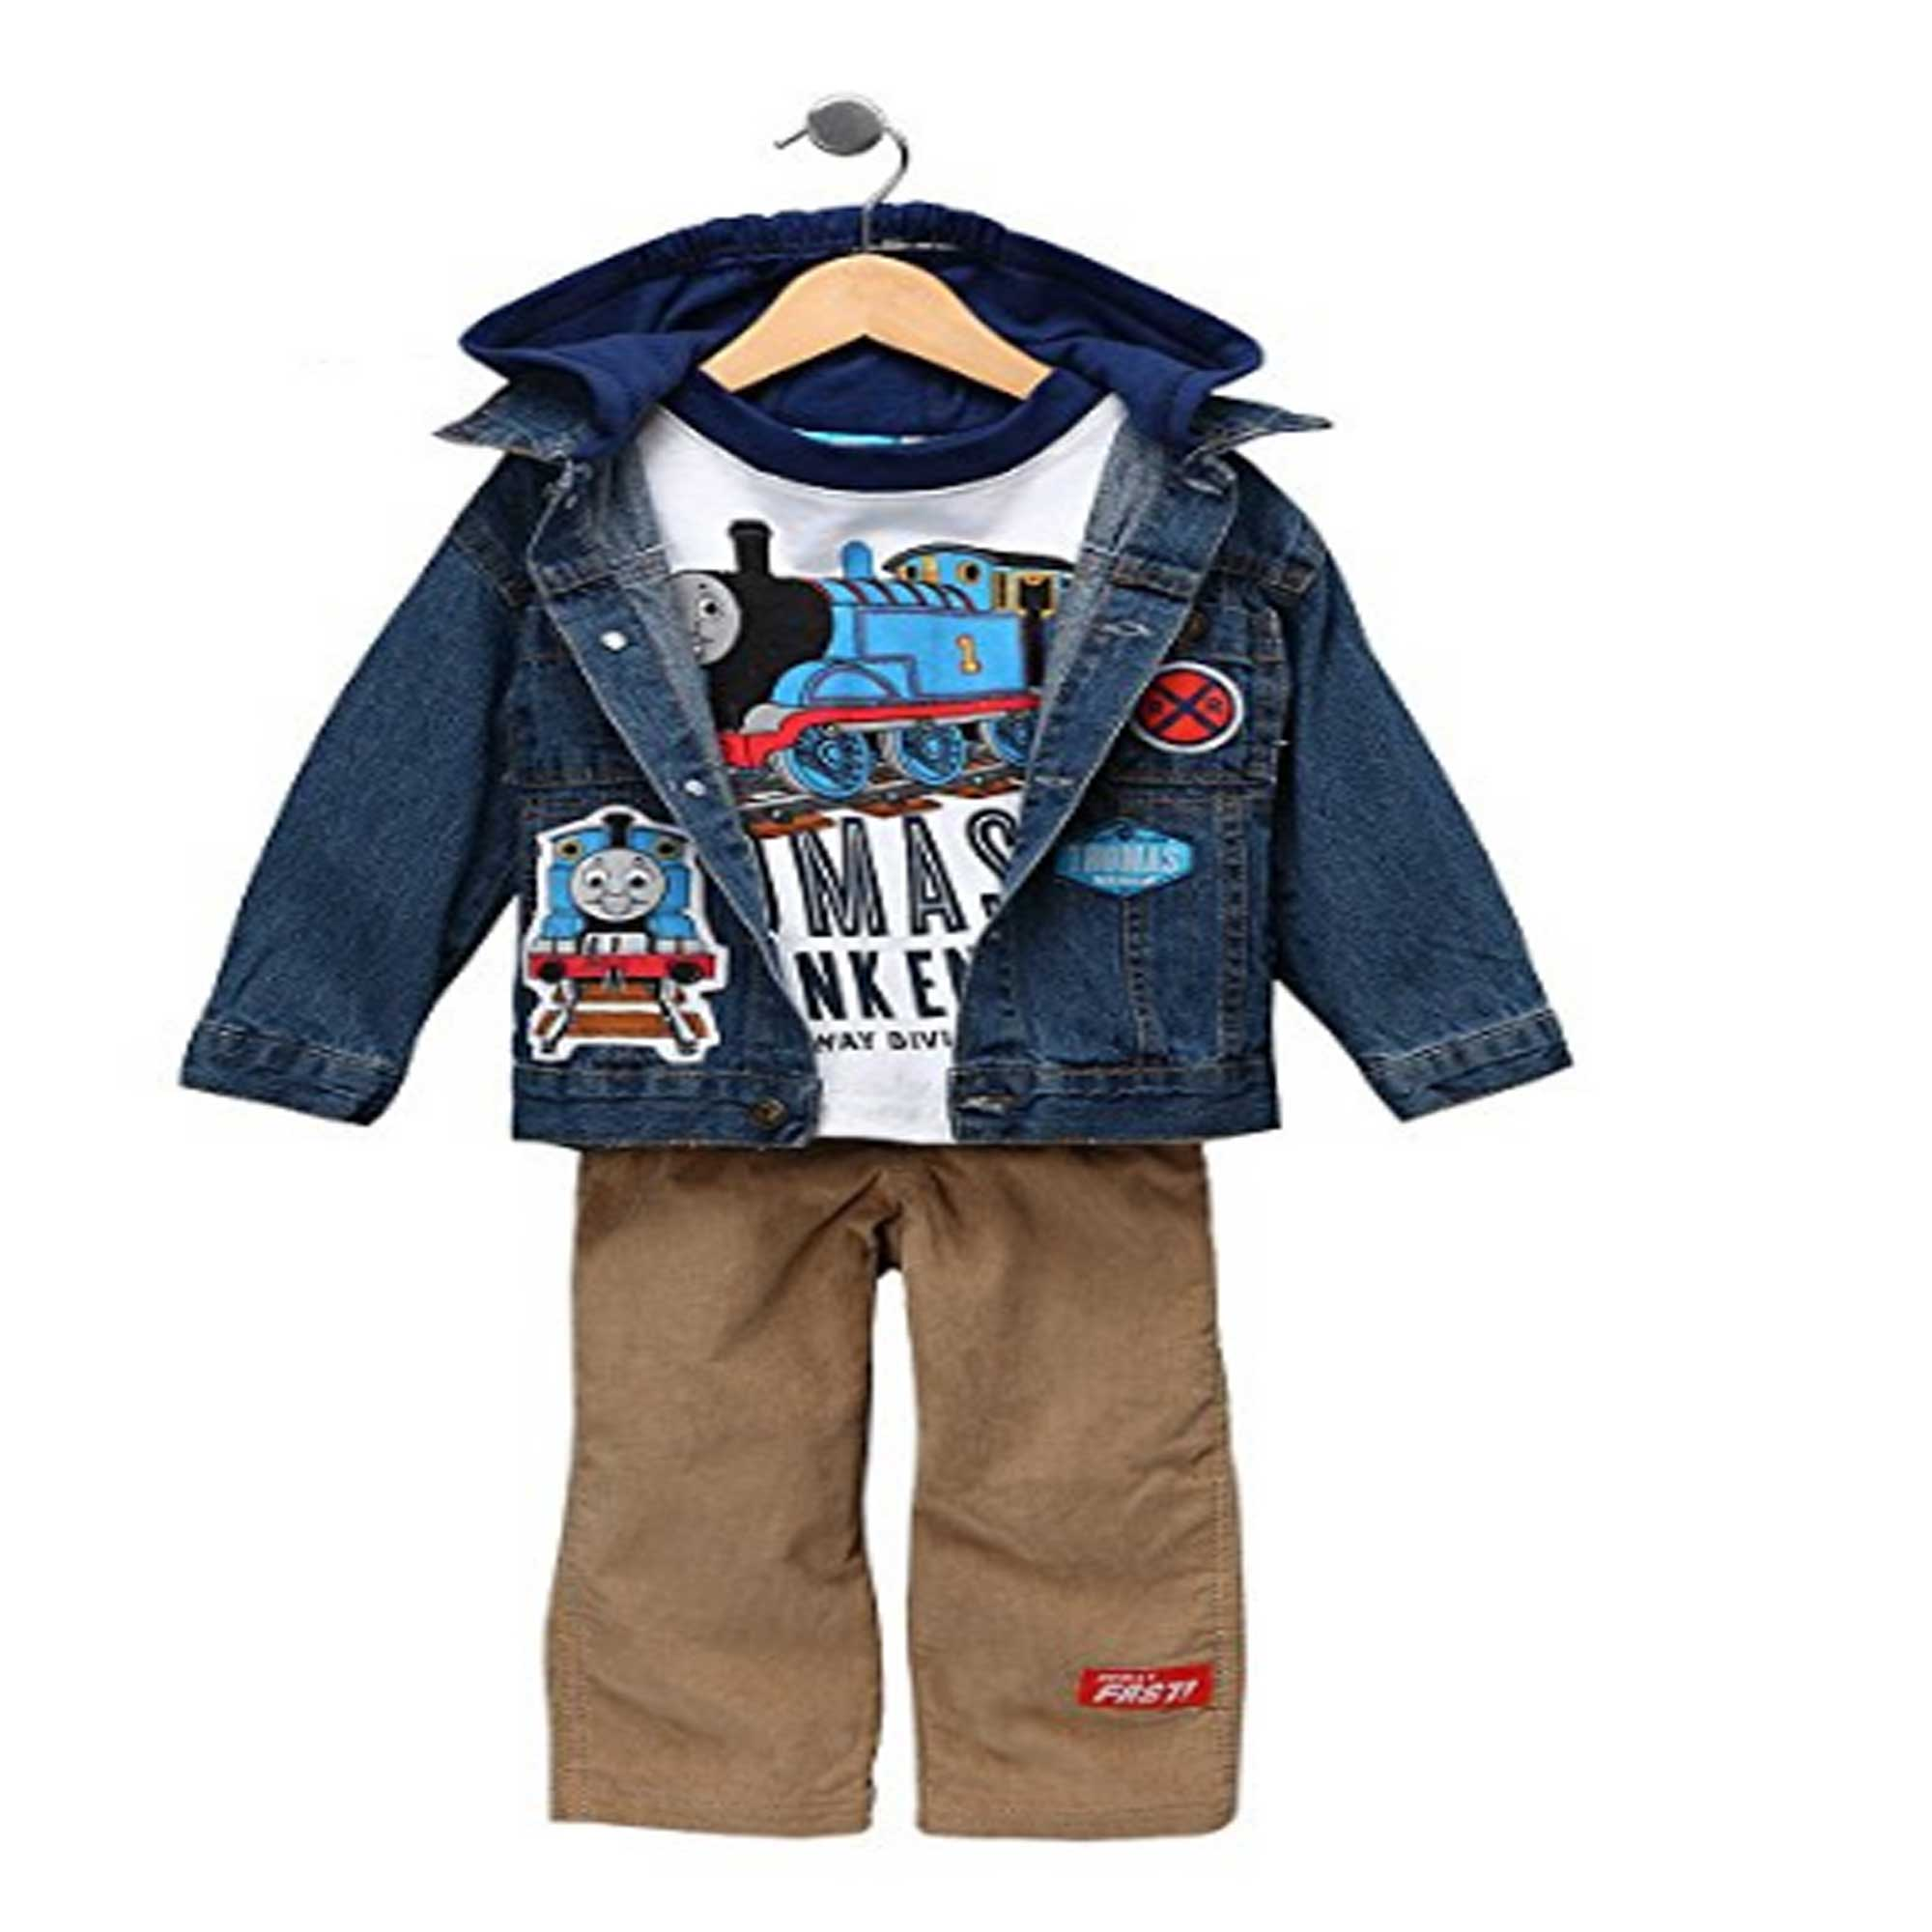 Thomas the Train 3pc Set with Denim Jacket - Size 2T